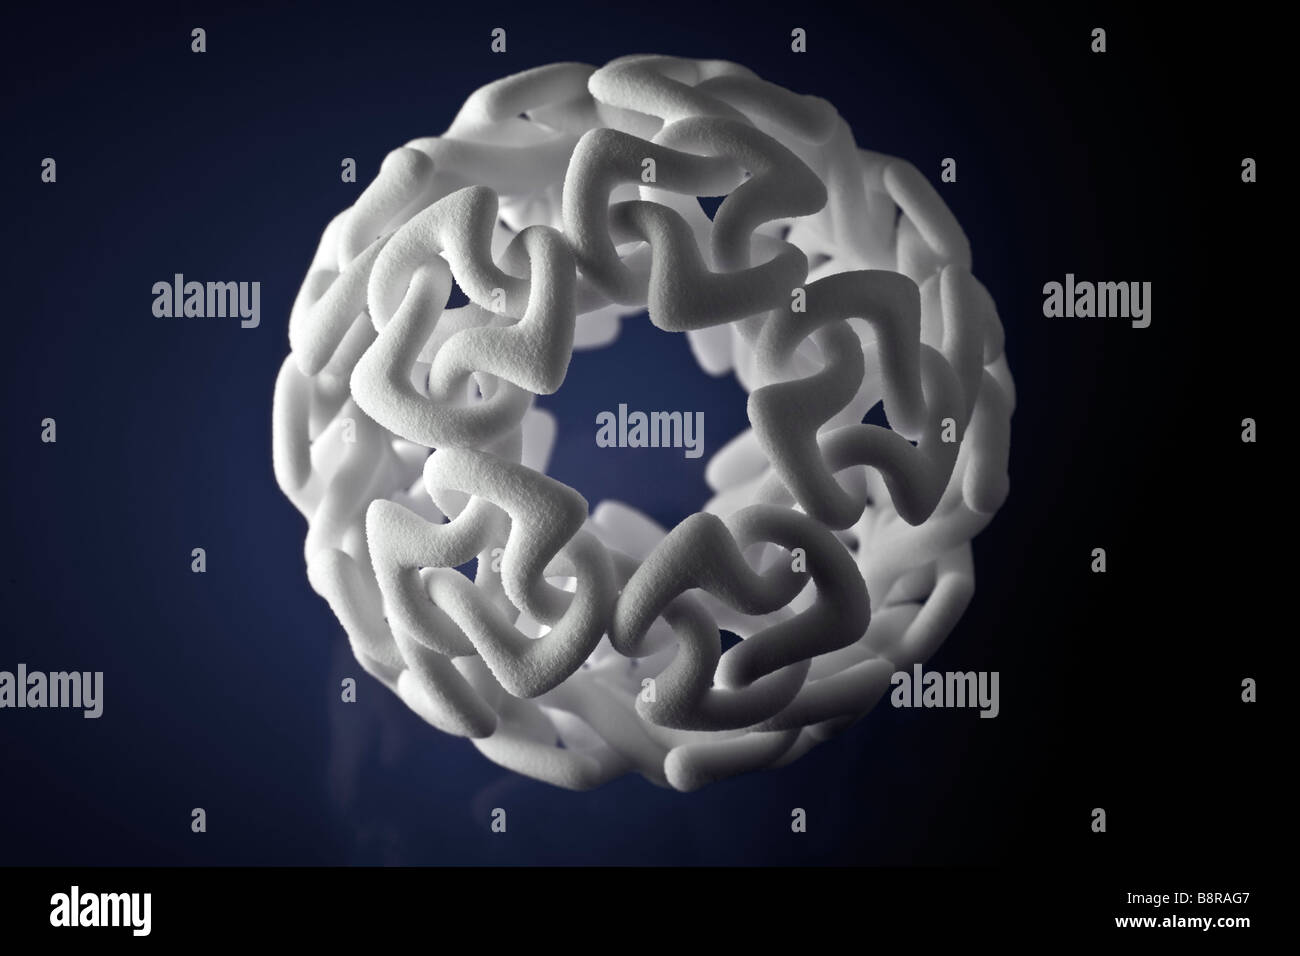 A production by 3-dimensional printing of a modern sculpture. Production en 3 dimensions d' une sculpture moderne. Stock Photo